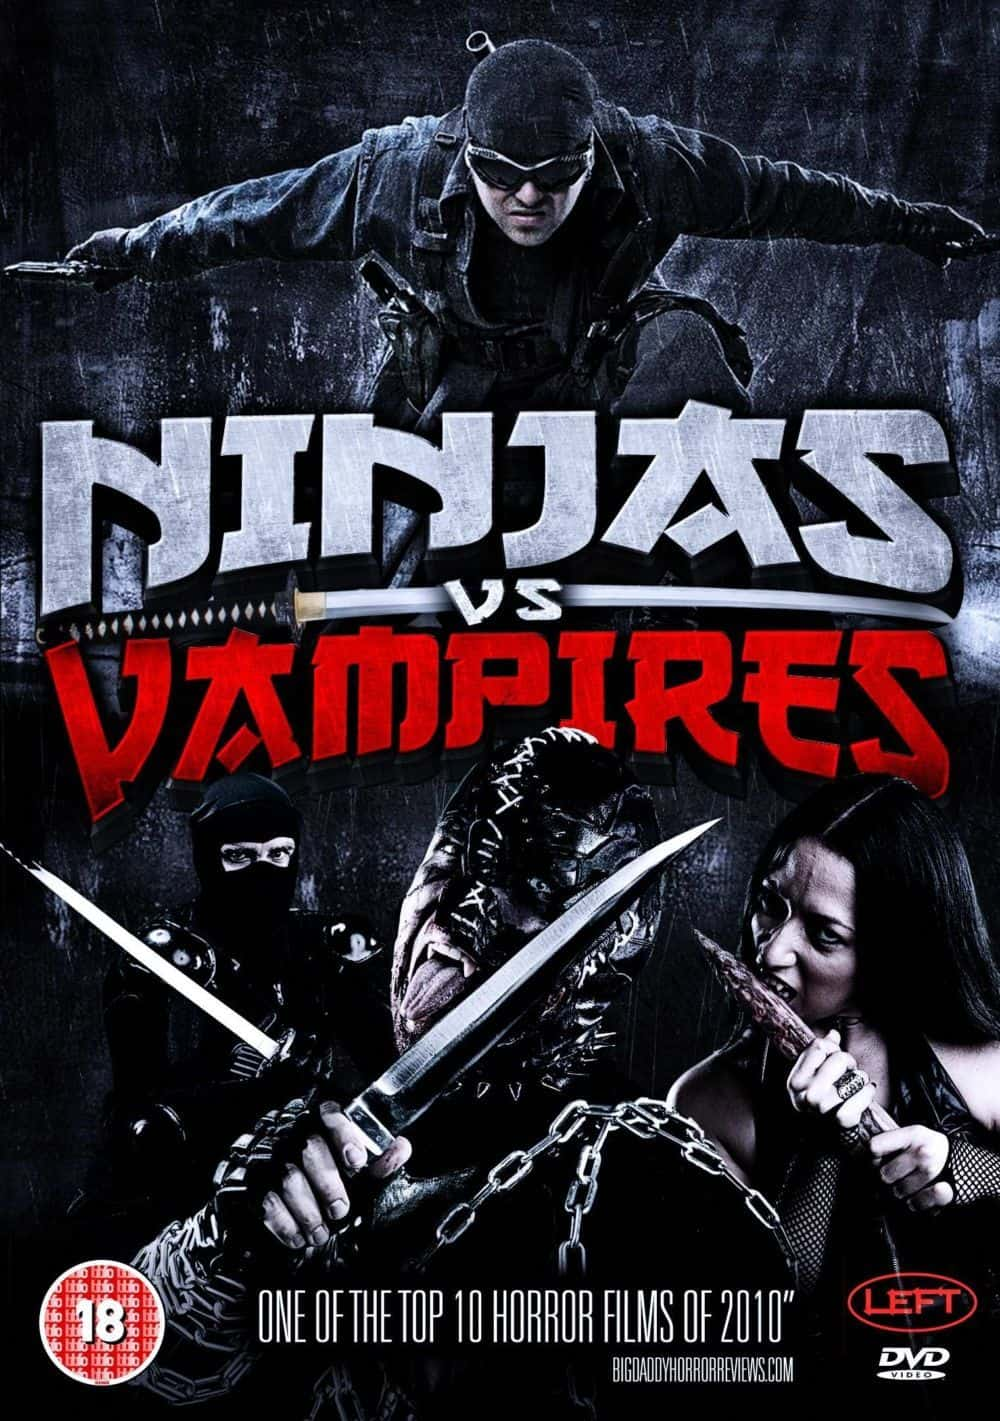 film reviews | movies | features | BRWC DVD Review - Ninjas vs Vampires